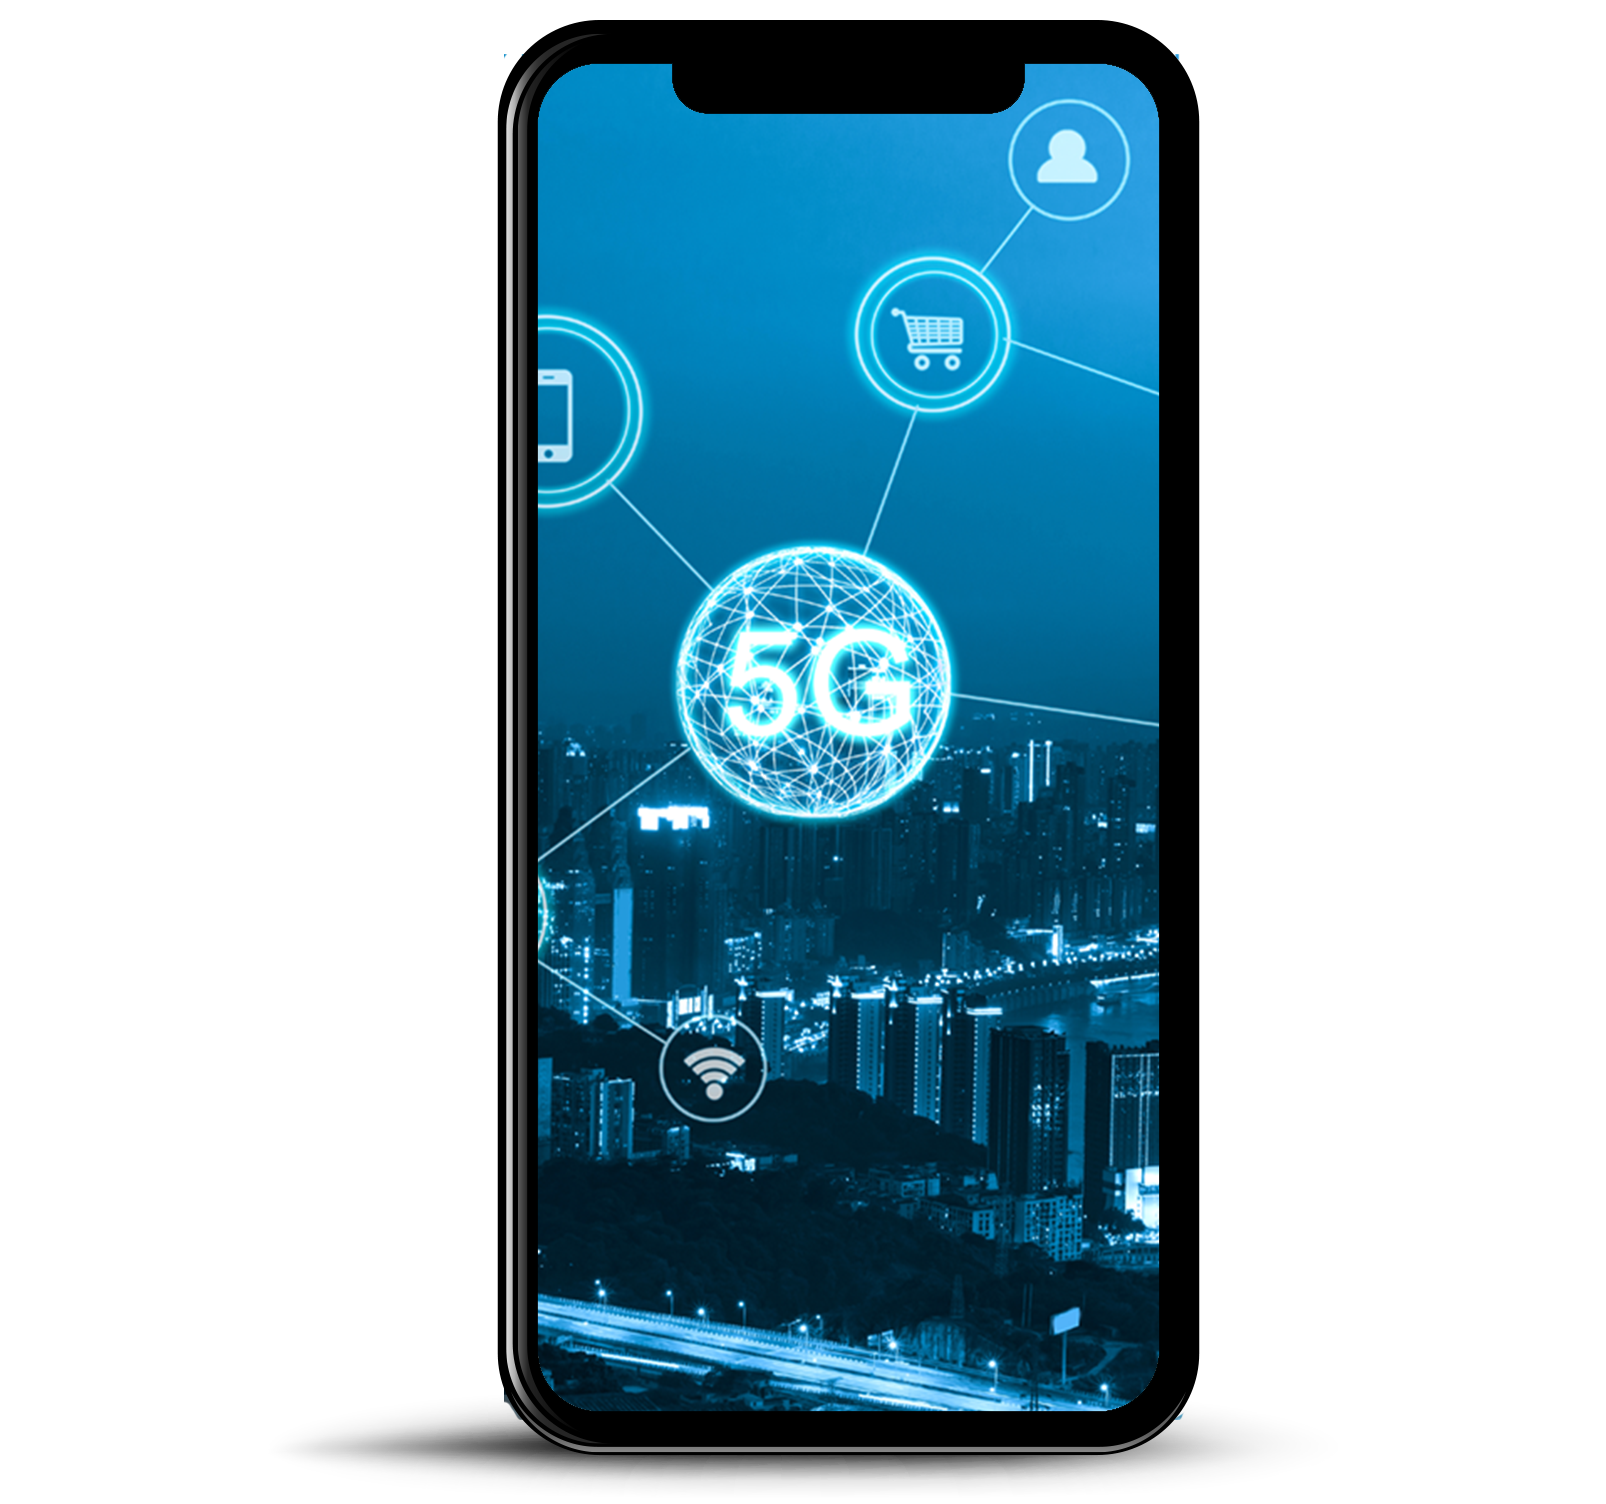 5g-mobile-speed